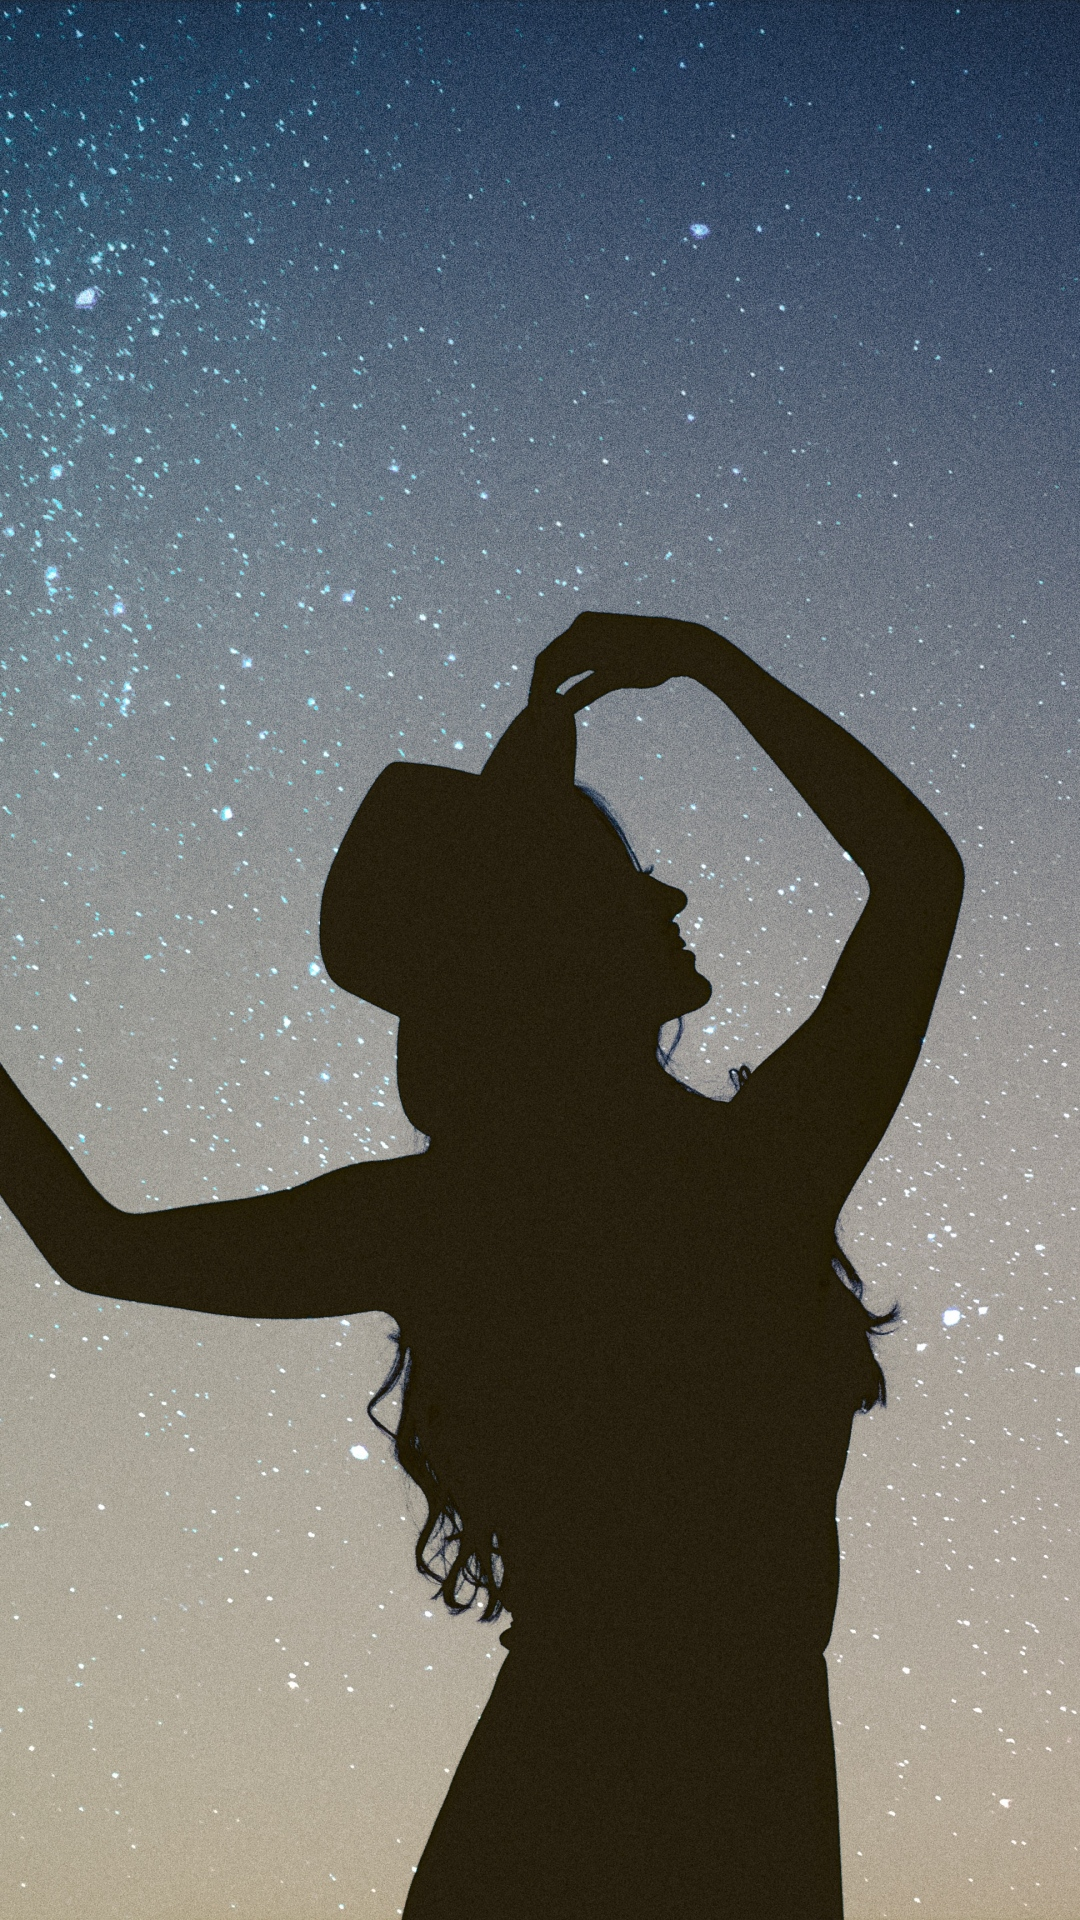 iphone wallpaper silhouette girl starry 3Wallpapers : notre sélection de fonds d'écran du 06/11/2017